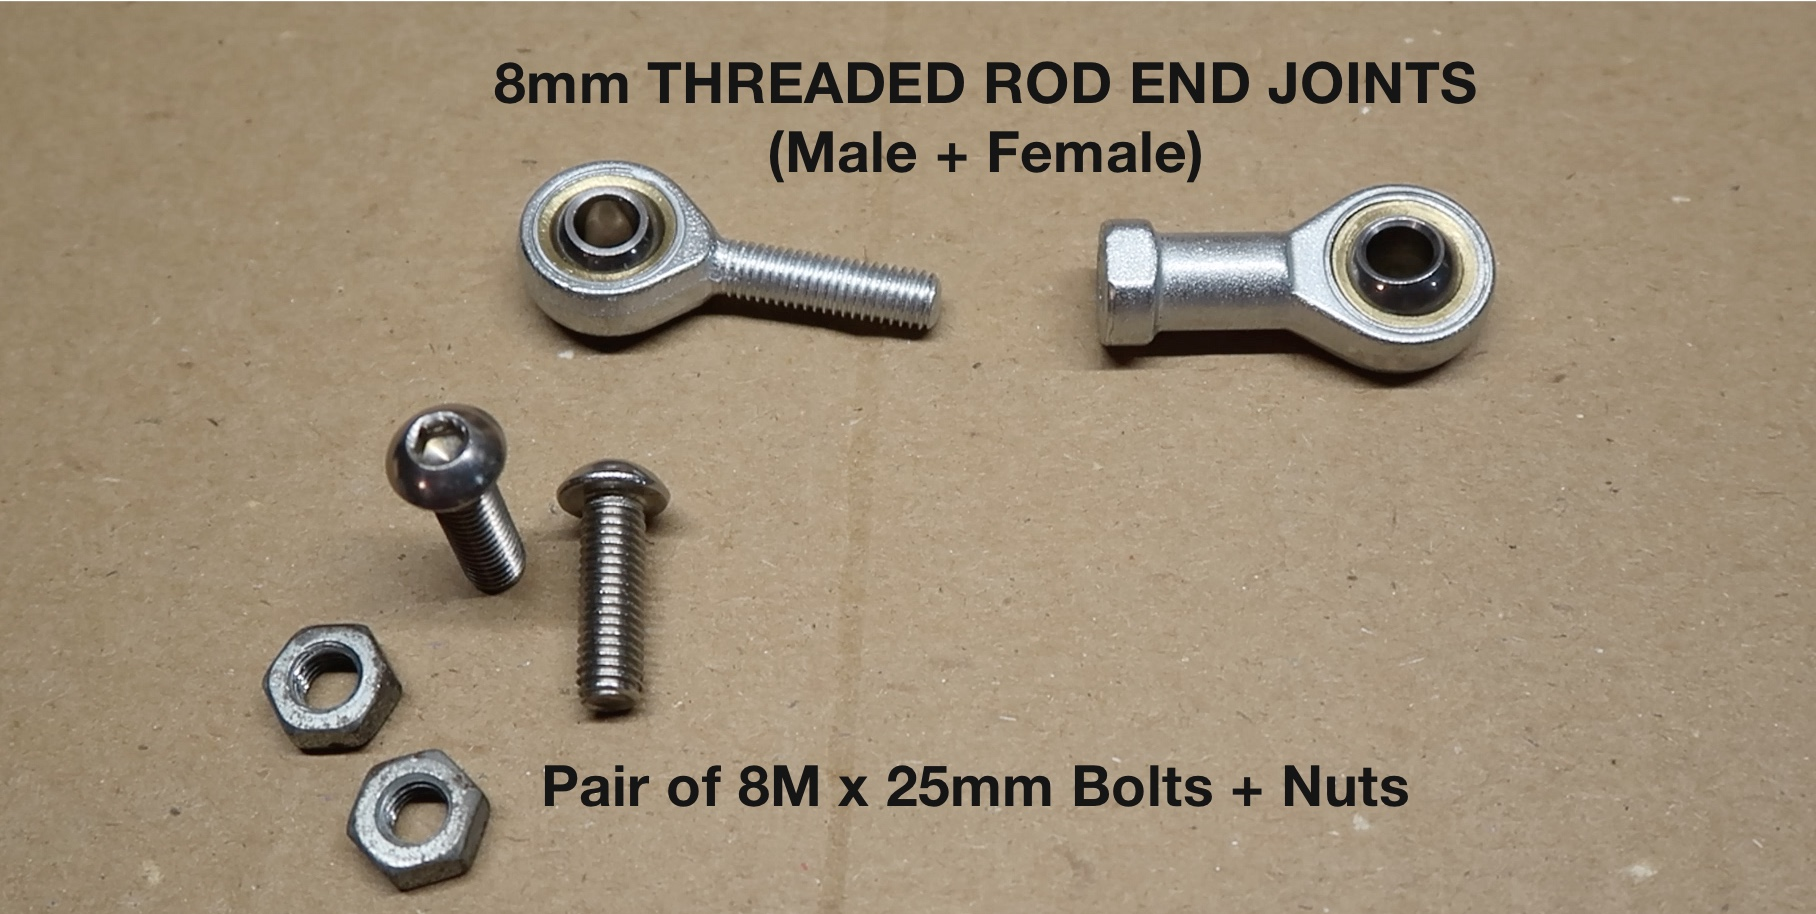 Hardware: 8mm Male + Female Rod End Joints plus a set of 8mm x 1.0 x 25mm bolts.